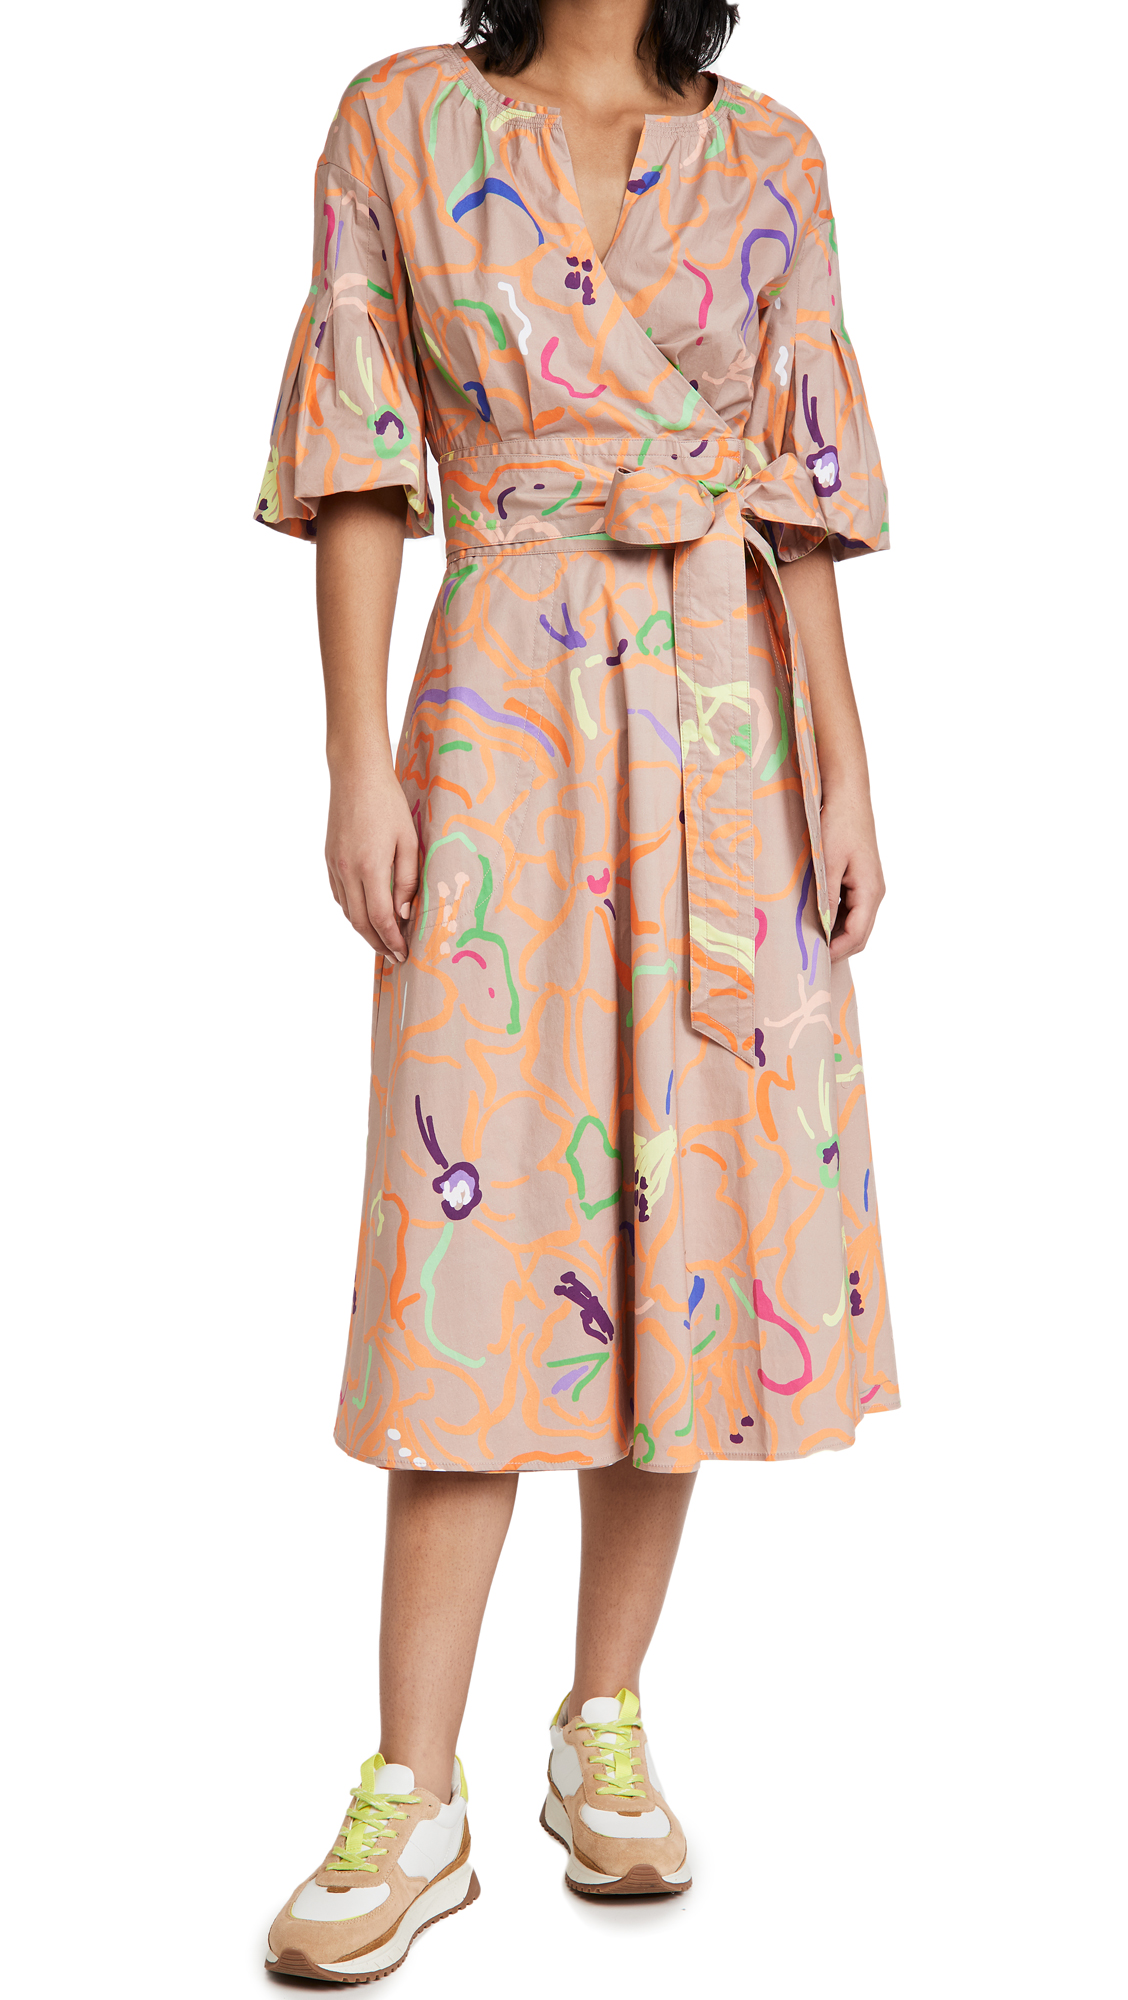 Tanya Taylor Frida Tie Waist Midi Dress In Squiggle Floral Beige